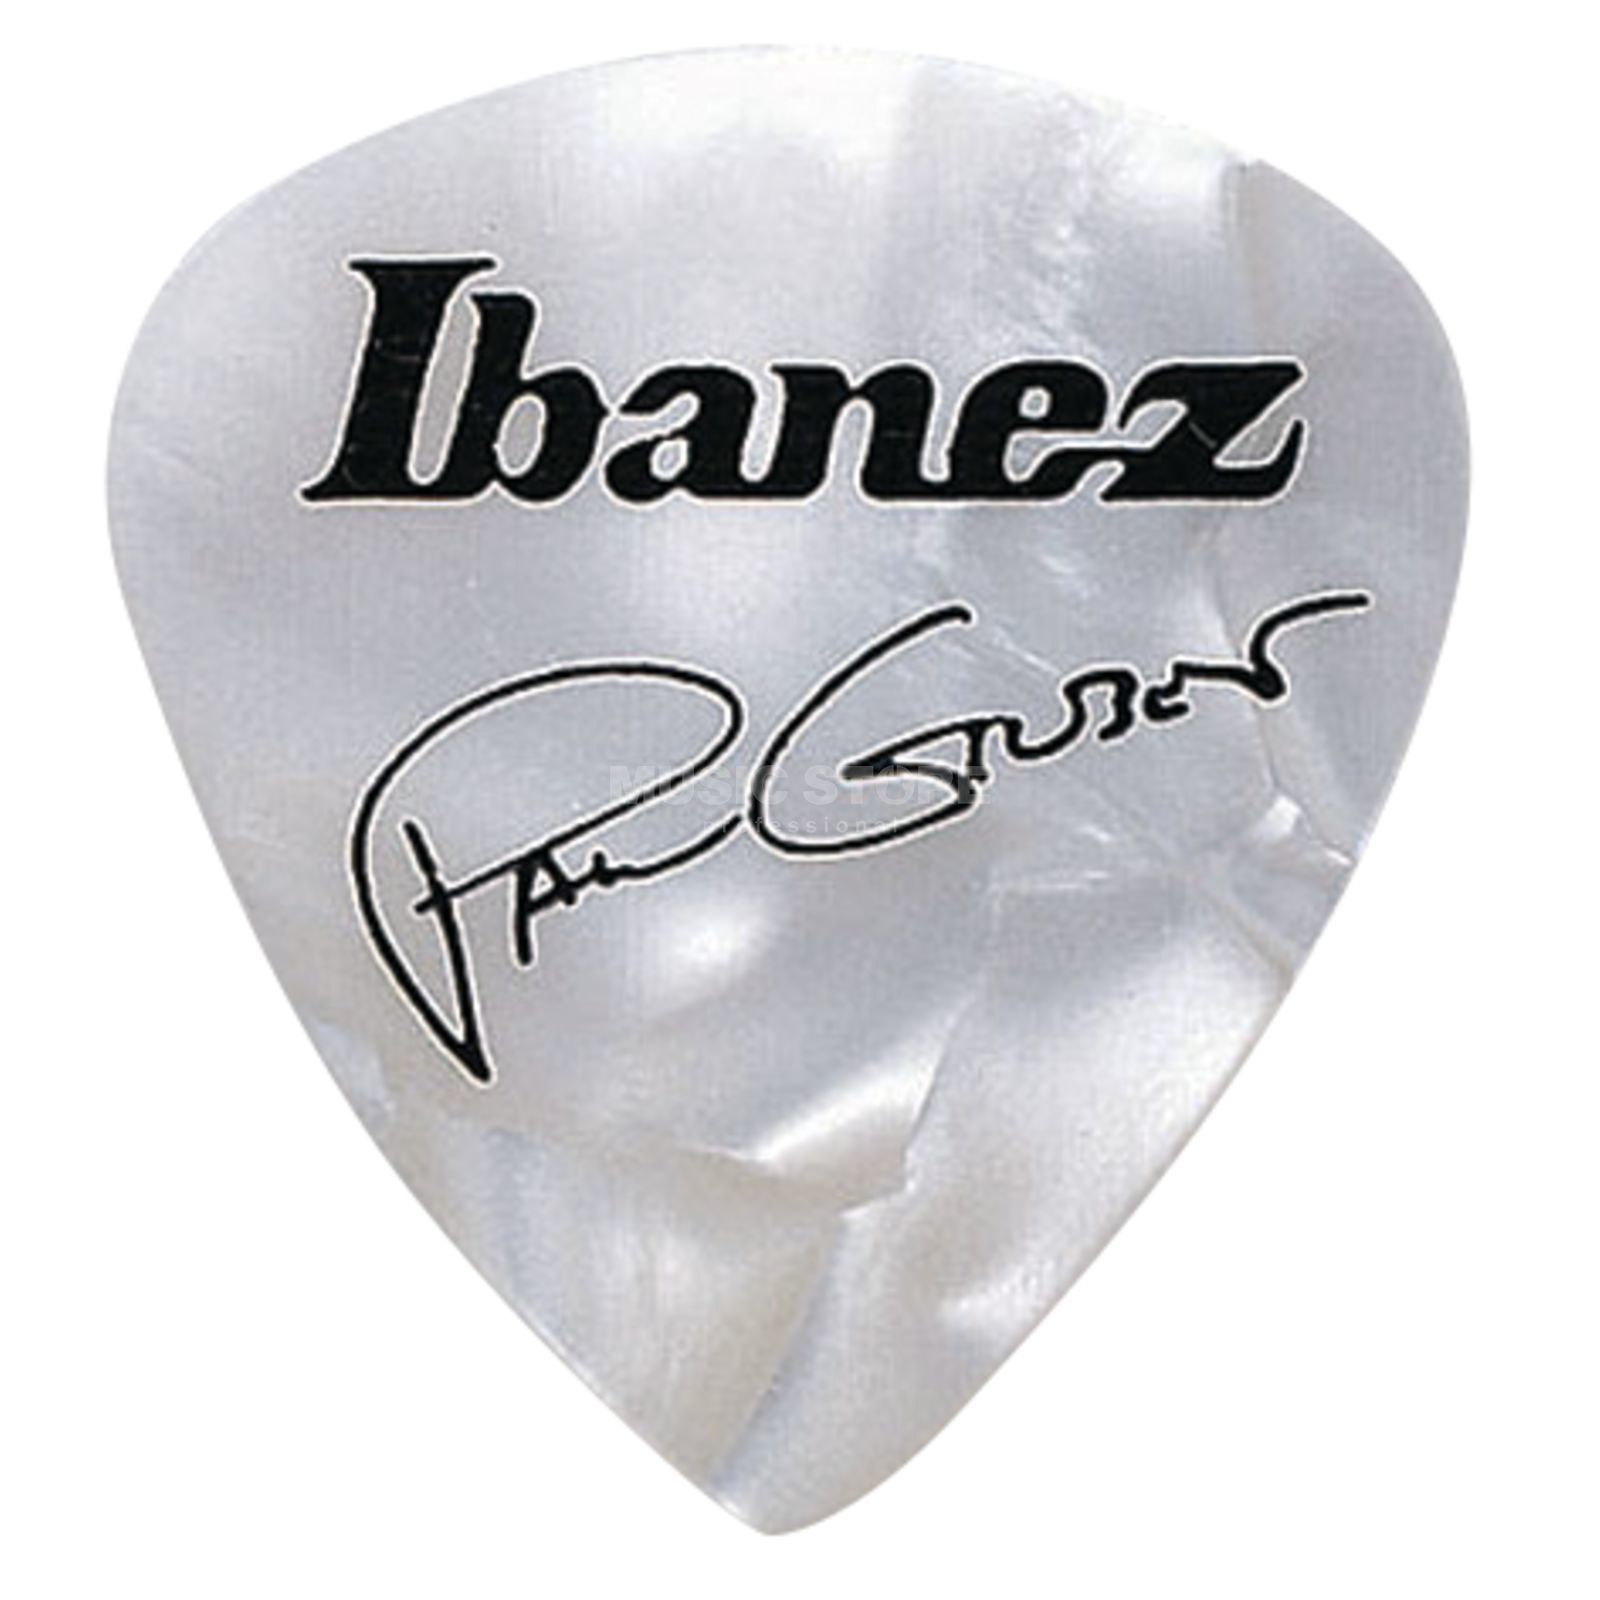 Ibanez Guitar Pick B1000PG-PW, 6-pack Paul Gilbert, signature, white Product Image